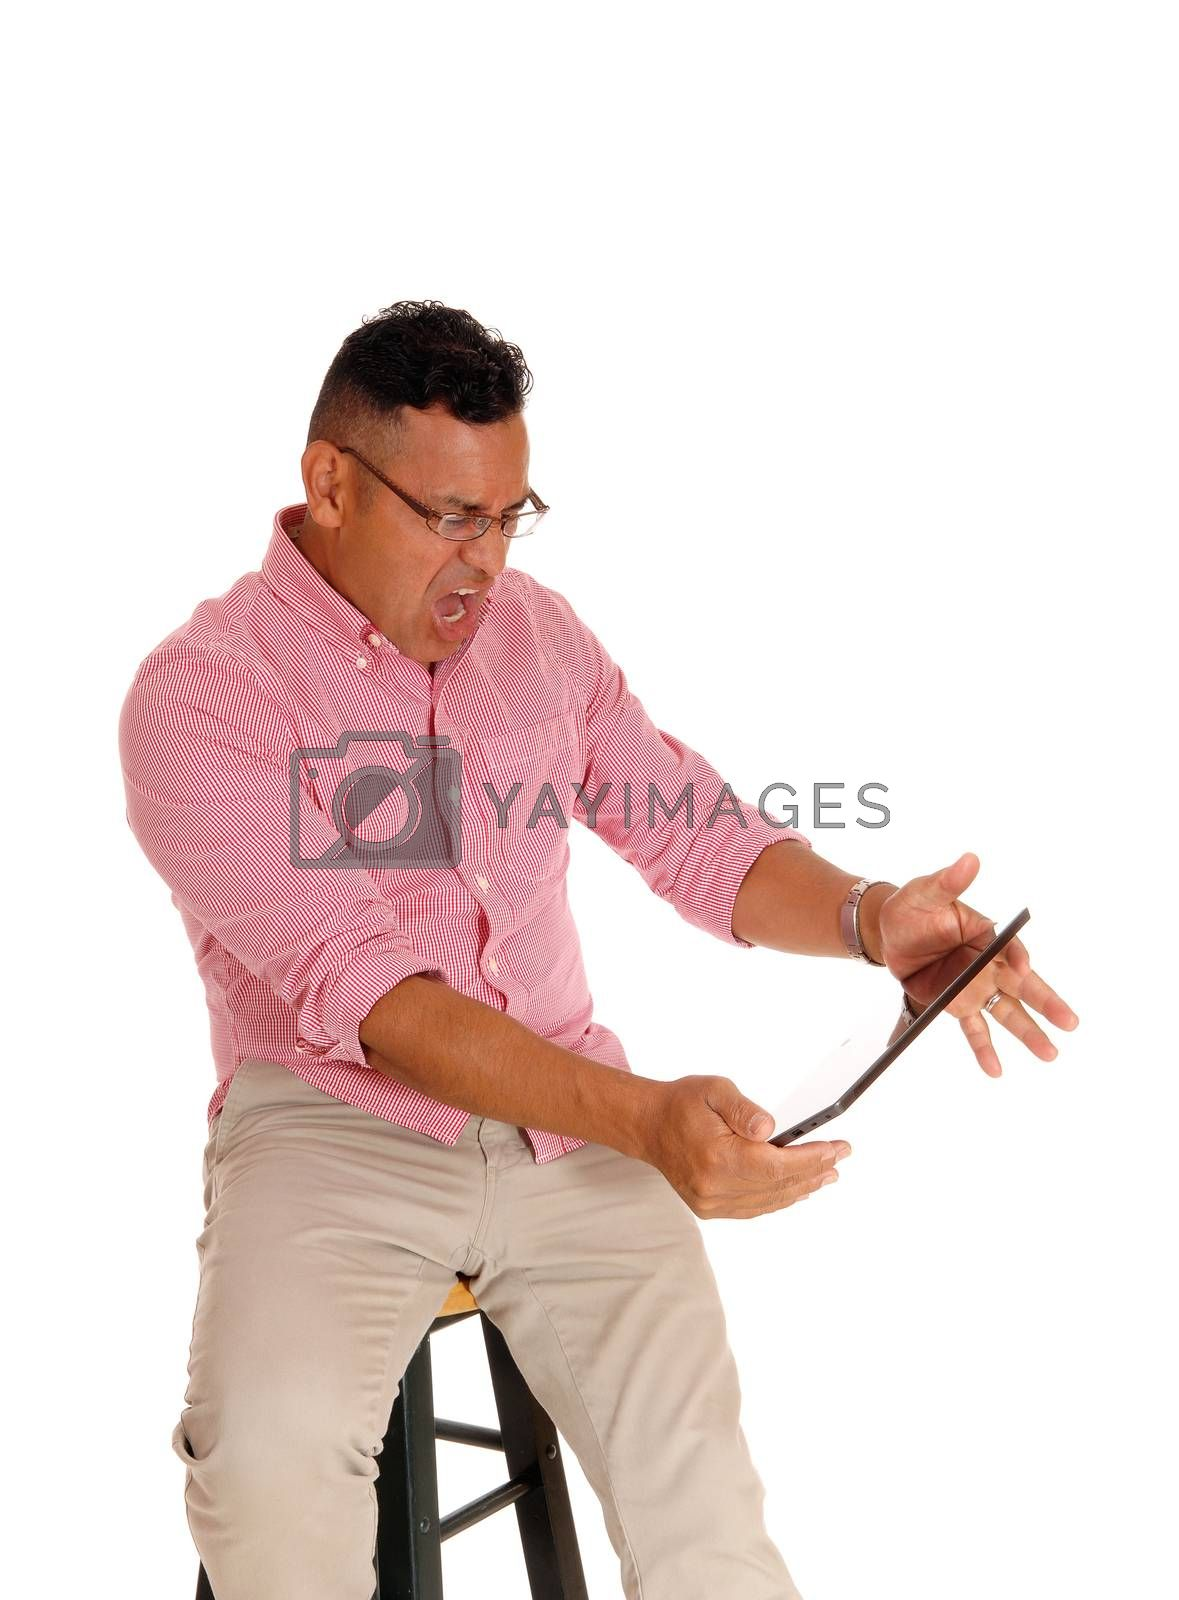 Royalty free image of Man screaming at his tablet computer. by feierabend